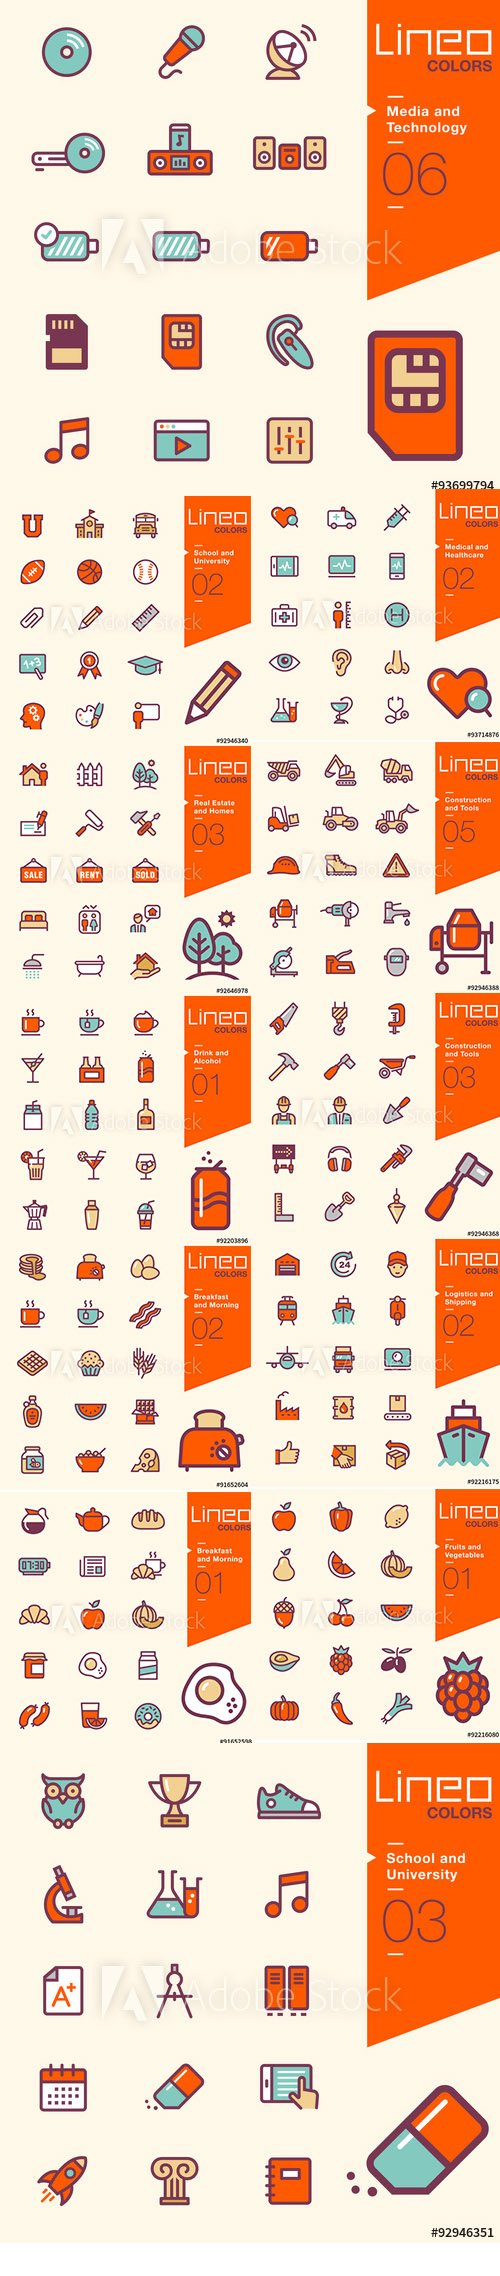 Lineo Colors Icons Pack